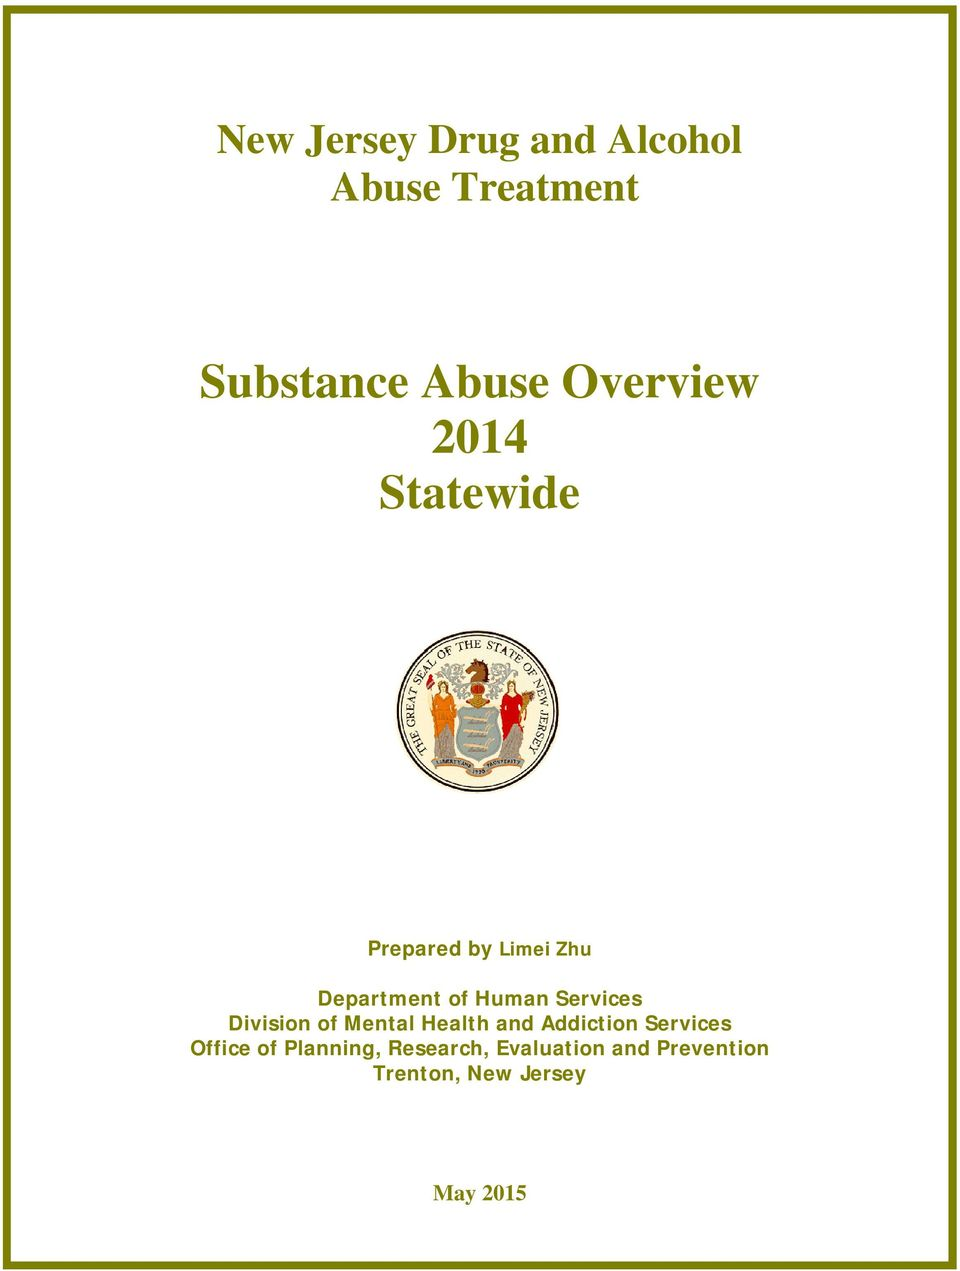 Services Division of Mental Health and Addiction Services Office